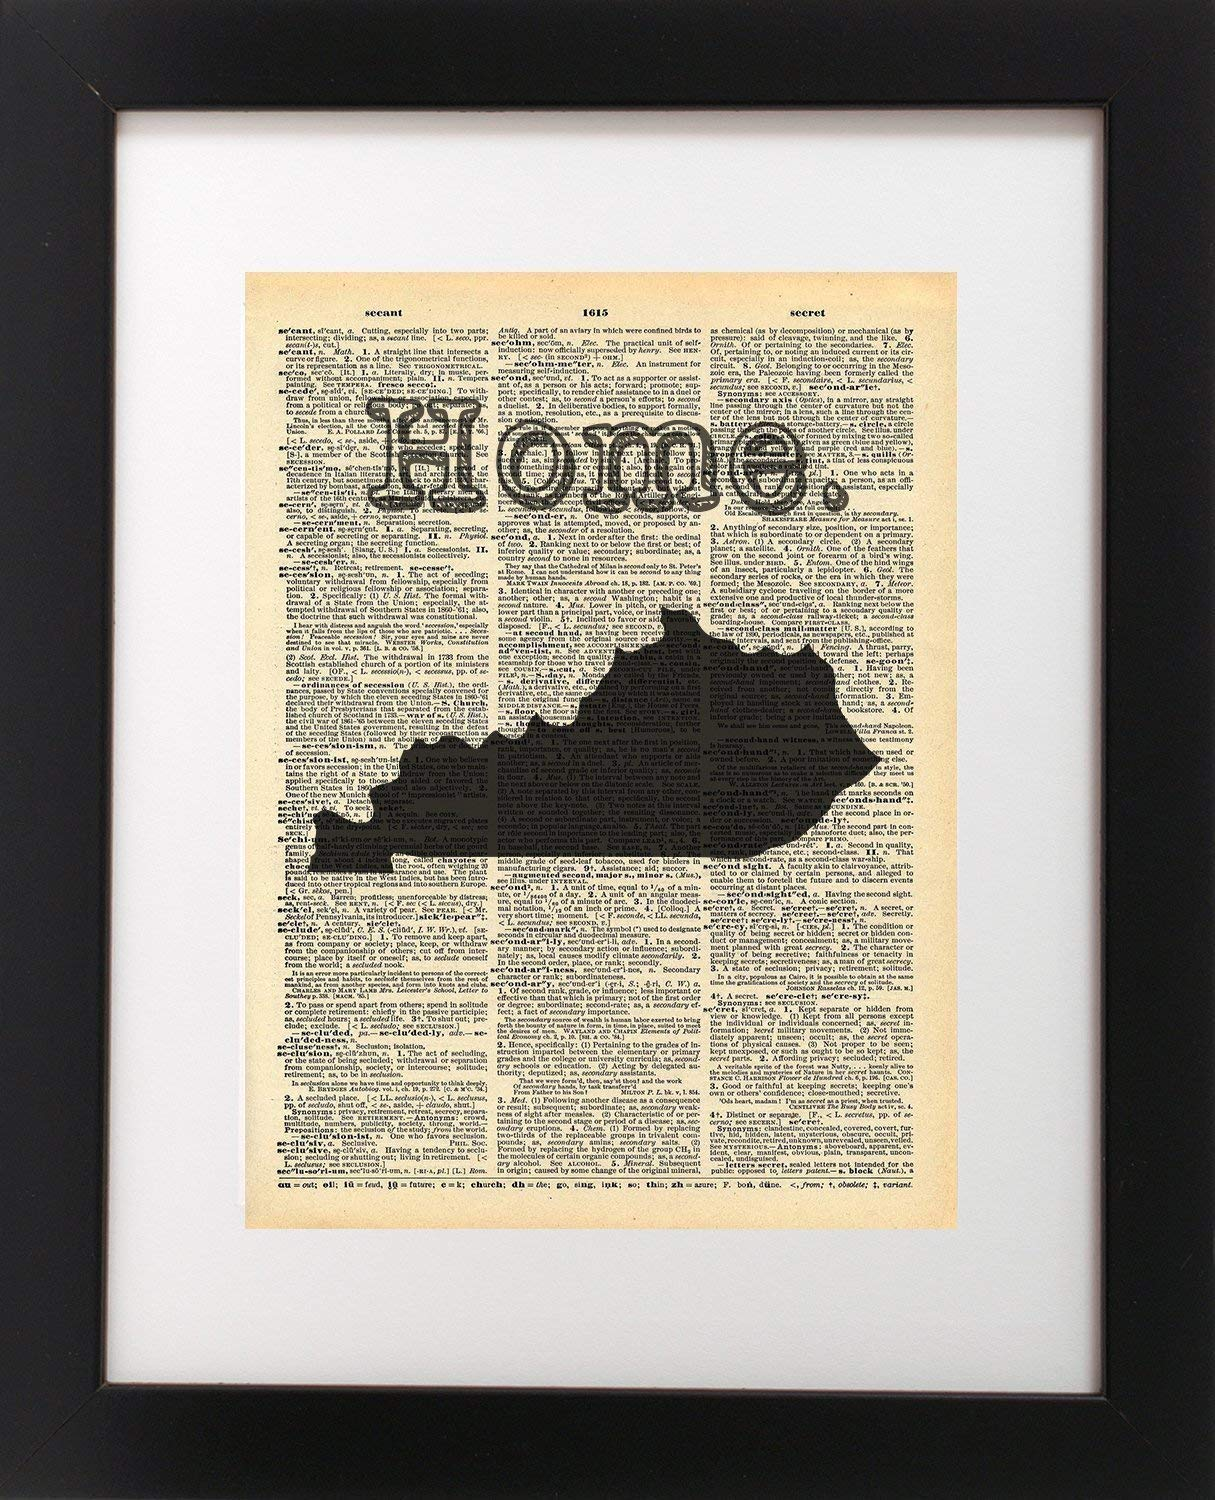 Kentucky Home Top State Vintage Map Dictionary Art Print 8x10 inch Home Vintage Art Abstract Prints Wall Art for Home Decor Wall Decorations For Living Room Bedroom Office Ready-to-Frame